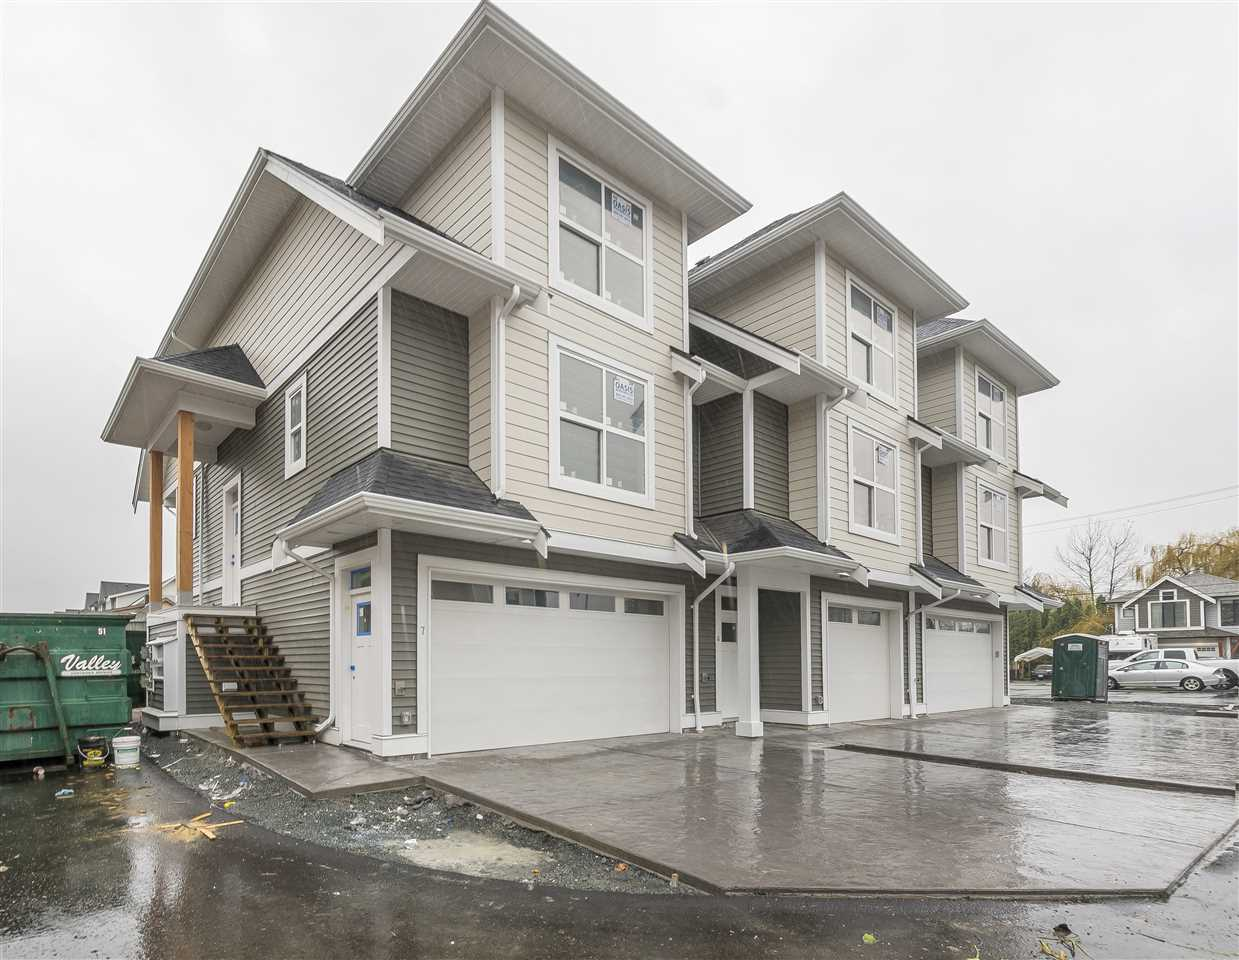 One of the nicest townhome complexes on the market today! Brand new construction; 11 units in total. All with high end finishing, full stainless steel appliance package and modern color choices. Hardy plank siding, 9' ceilings on first and main floors, community garden and childrens park private in complex. Located on West side of Chilliwack near Prospera centre, hospital, Leisure centre, Arts Centre, and Shopping. Homes feature 3brdms, 3bath with recreation room and bathroom on main floor off of garage. Options for Built in vac, Central air conditioning, and Barbeque box. Estimated completion September 2017!